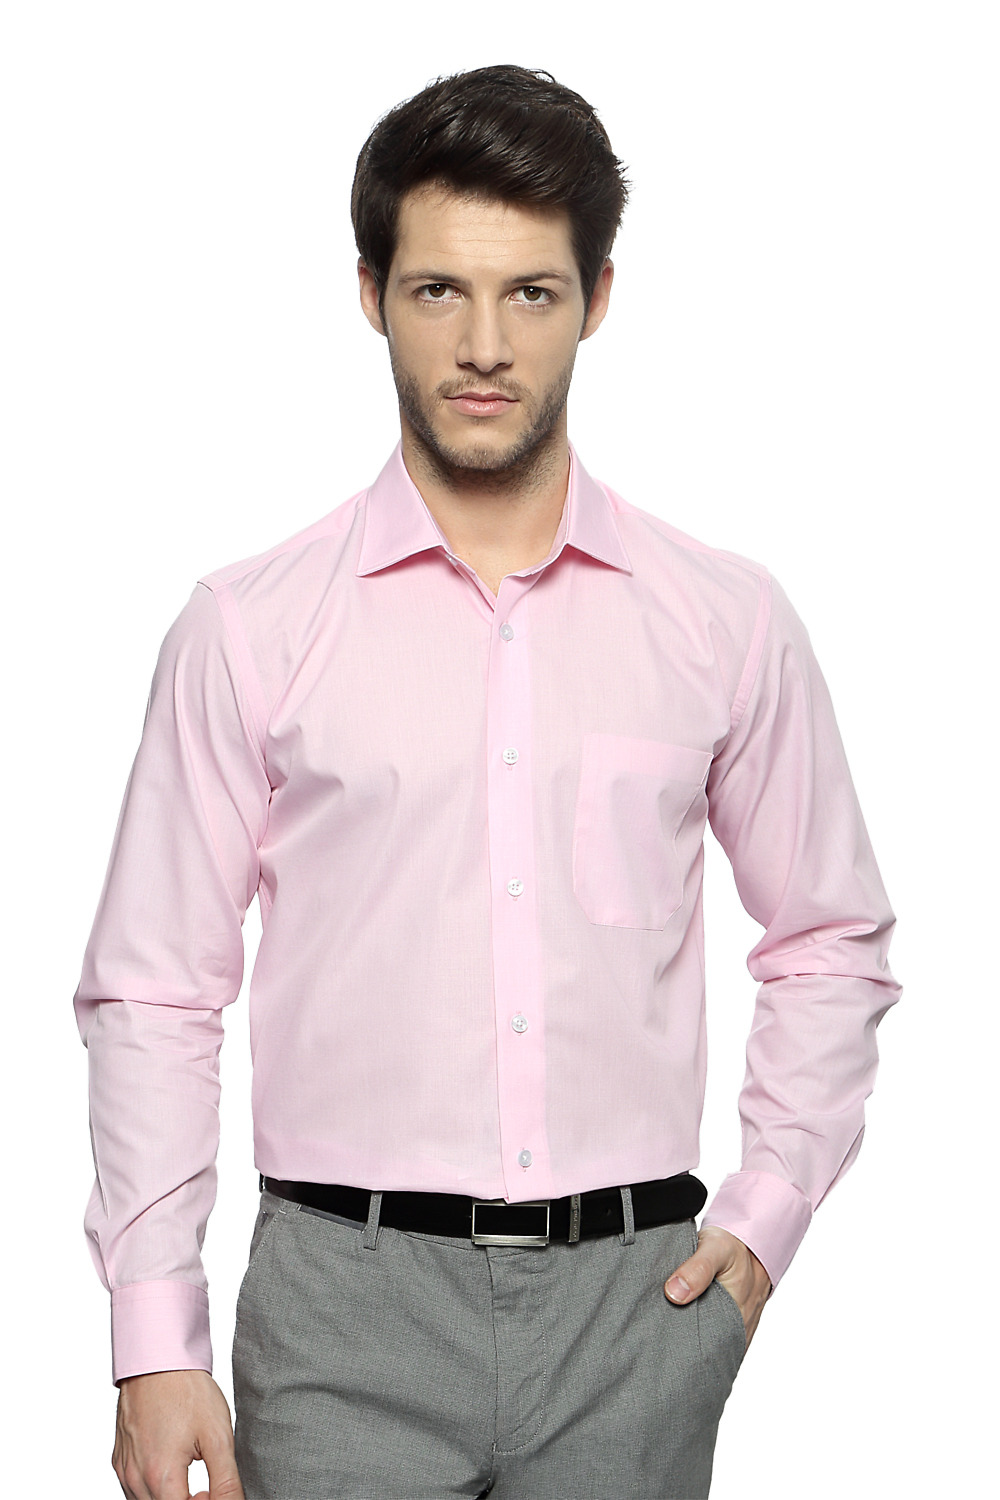 pale pink shirt artee shirt